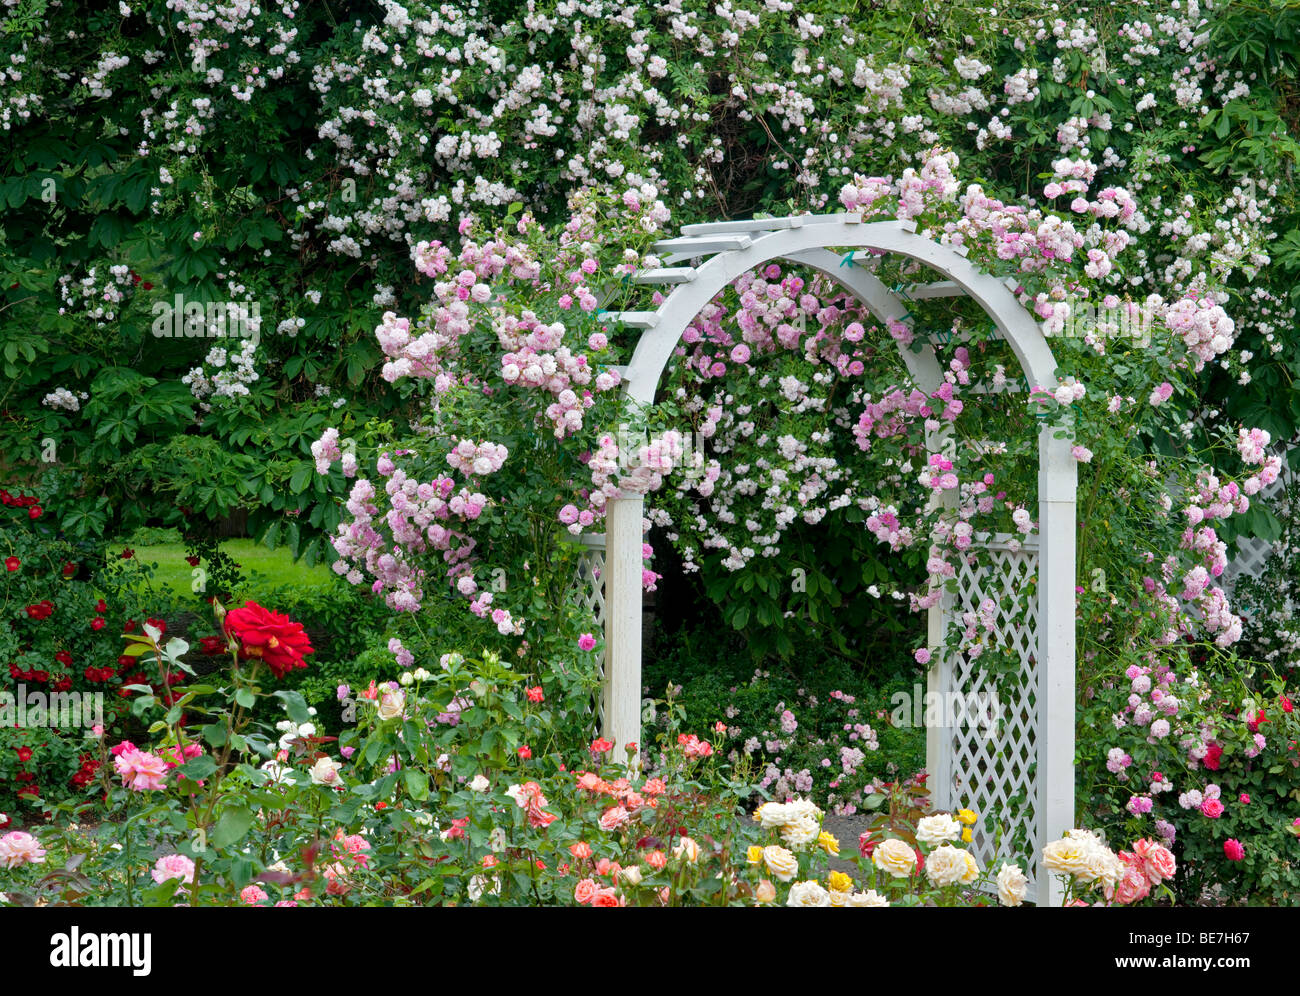 Arch with climbing roses. Heirloom Gardens. St. Paul, Oregon - Stock Image